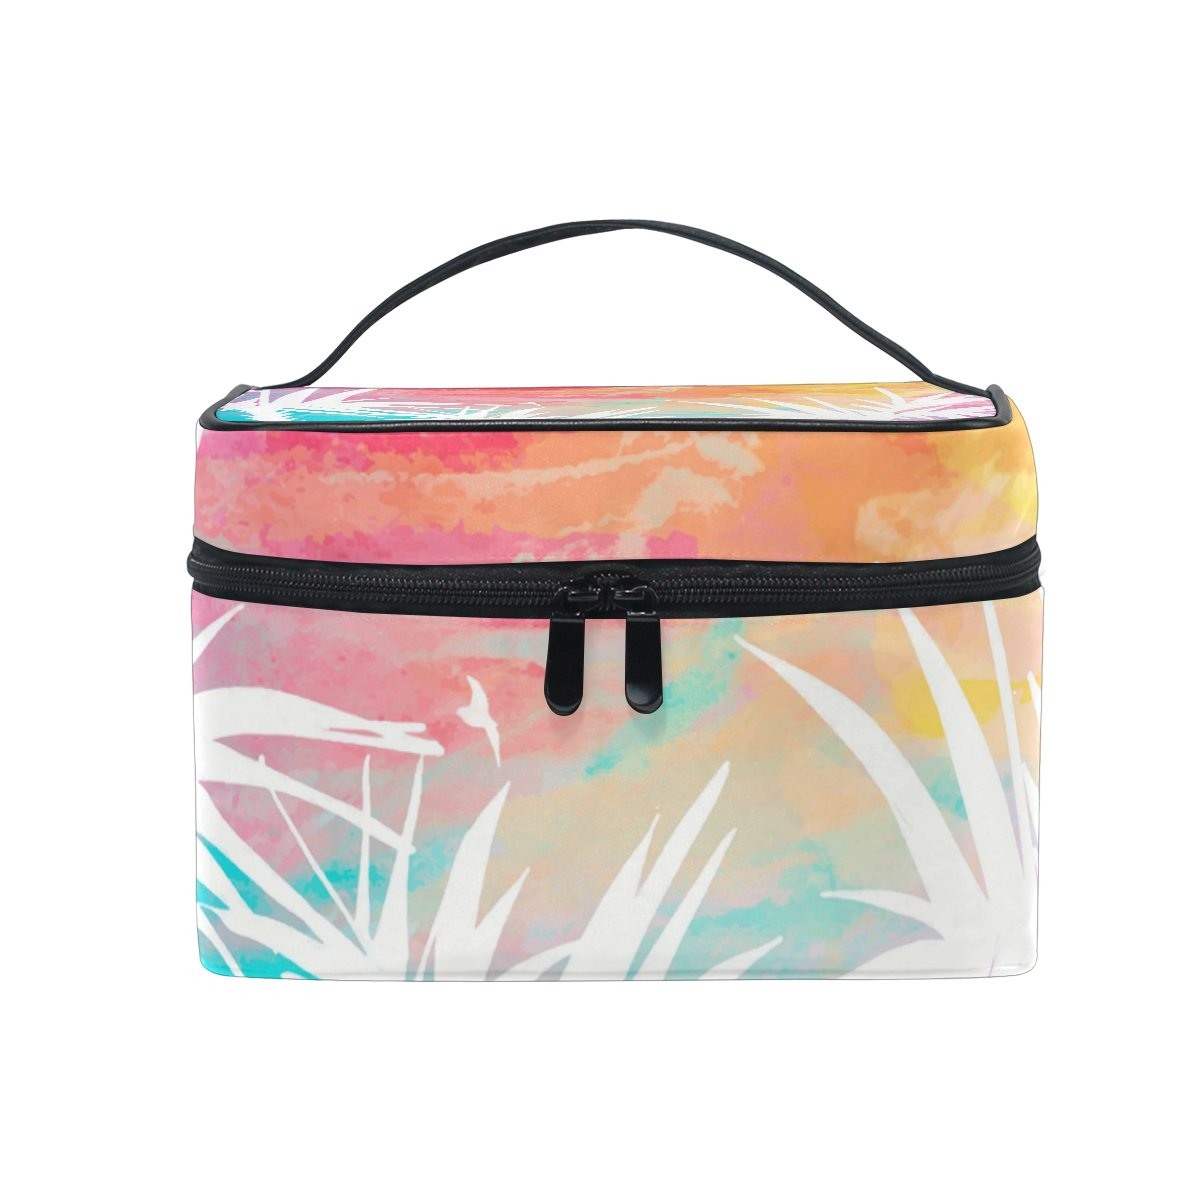 SAVSV Travel Makeup Bags With Zipper Colored Palm Trees Cosmetic Bag Toiletry Bags Train Cases Storage Bags Portable Multifunction Case for Women Girls